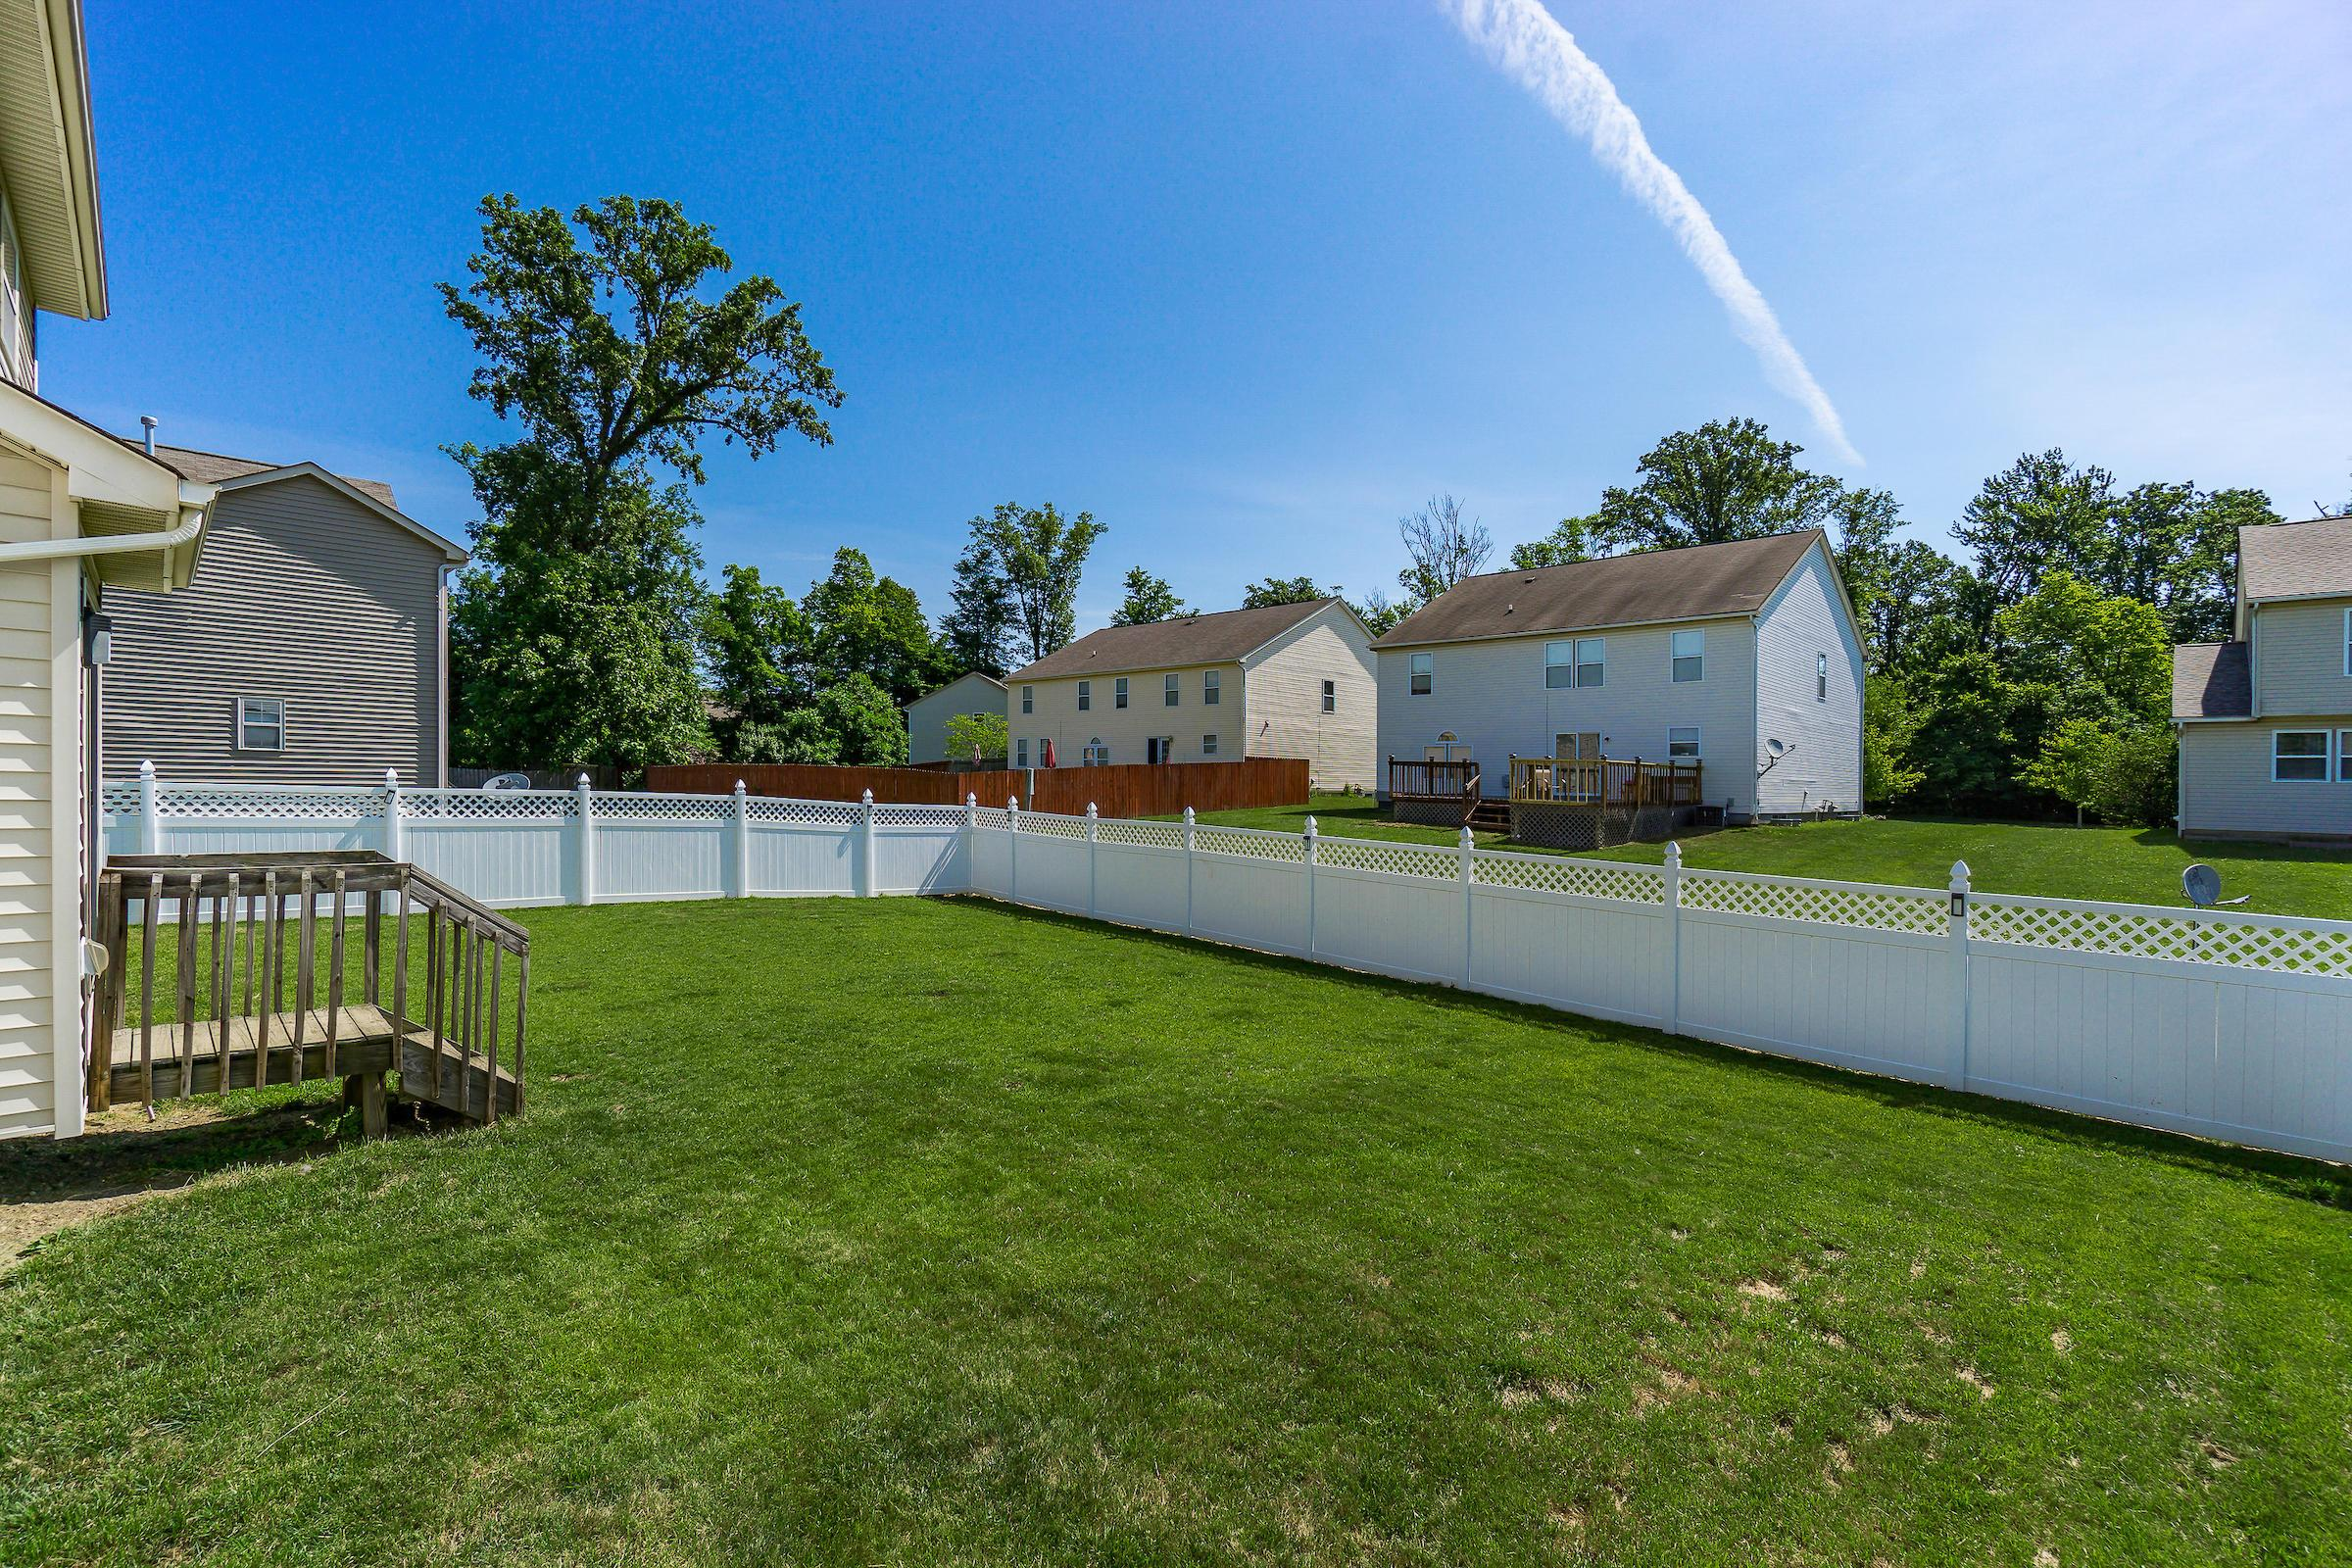 2164 Wagontrail Drive, Reynoldsburg, Ohio 43068, 3 Bedrooms Bedrooms, ,3 BathroomsBathrooms,Residential,For Sale,Wagontrail,220021000